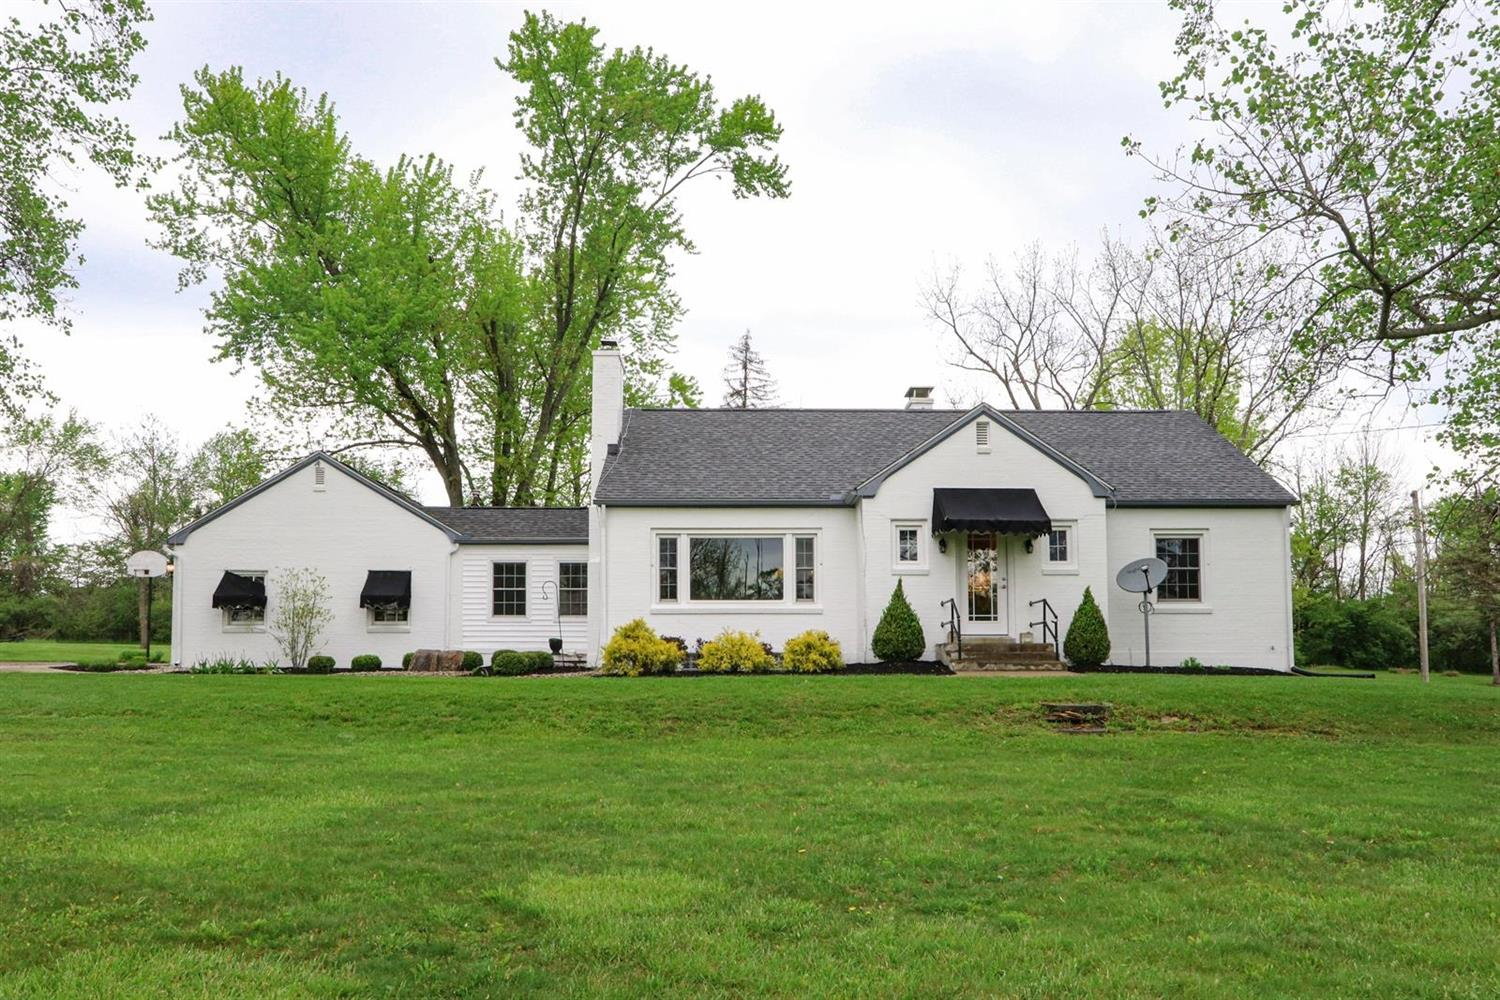 Property for sale at 2440 E St Rt 73, Clearcreek Twp.,  Ohio 45068